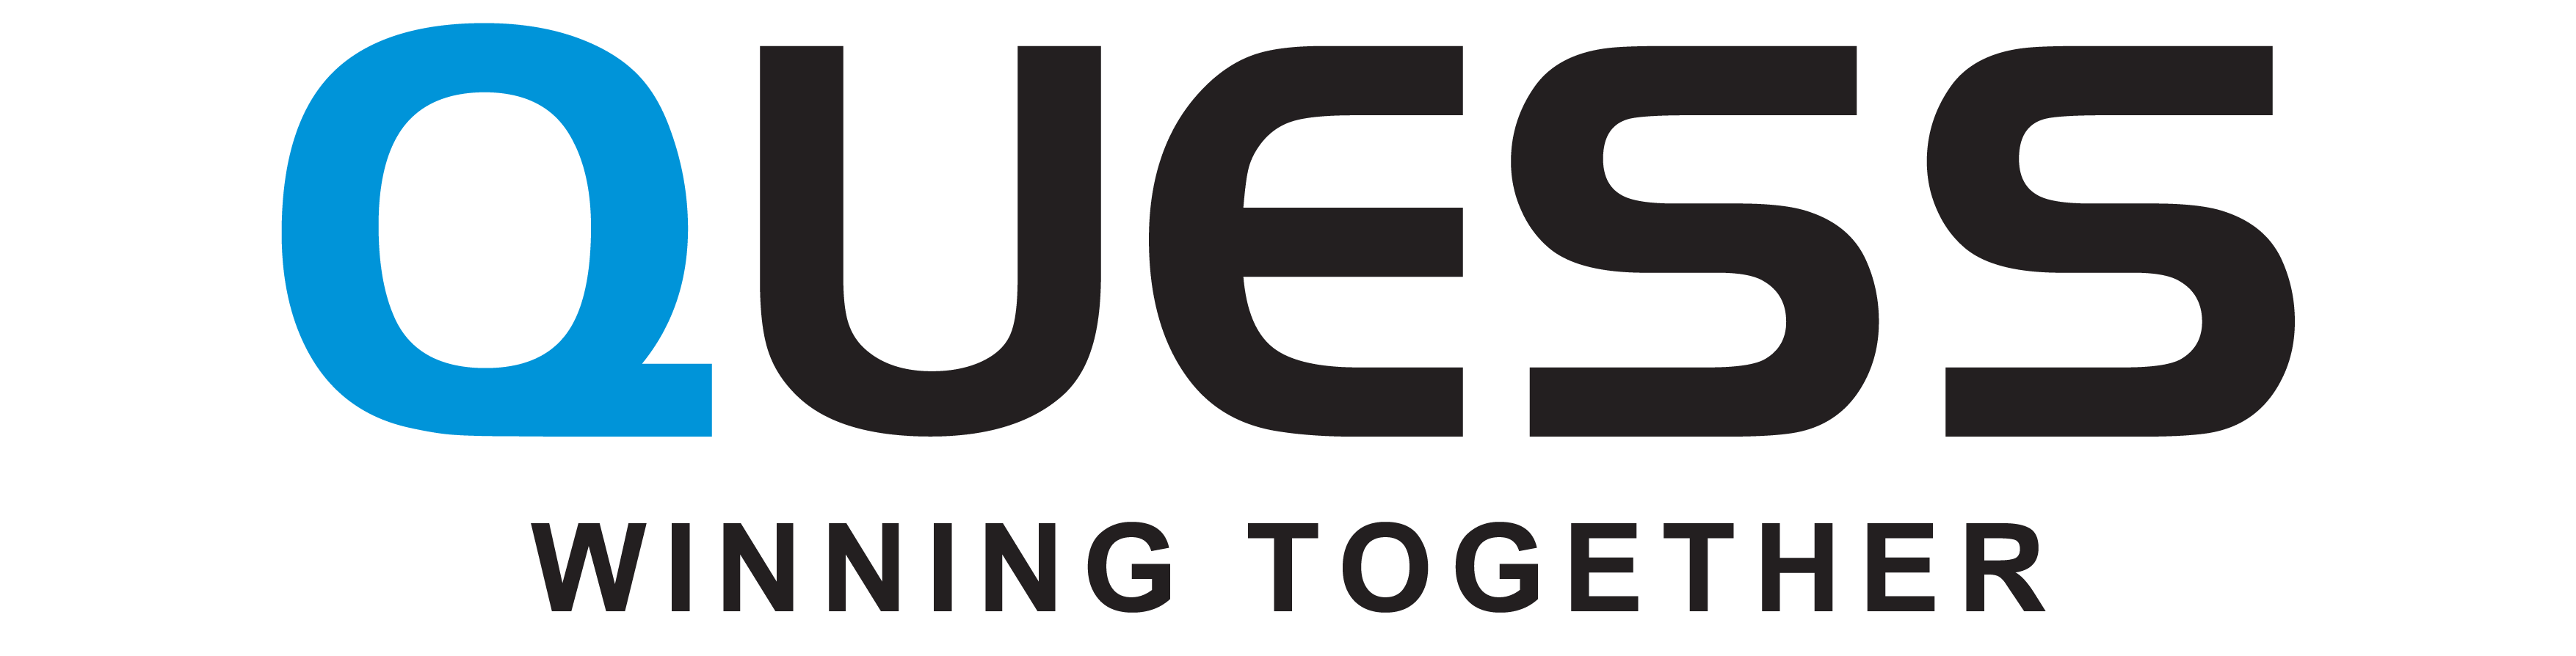 Quess-logo_winning-together-02-e1576663667658